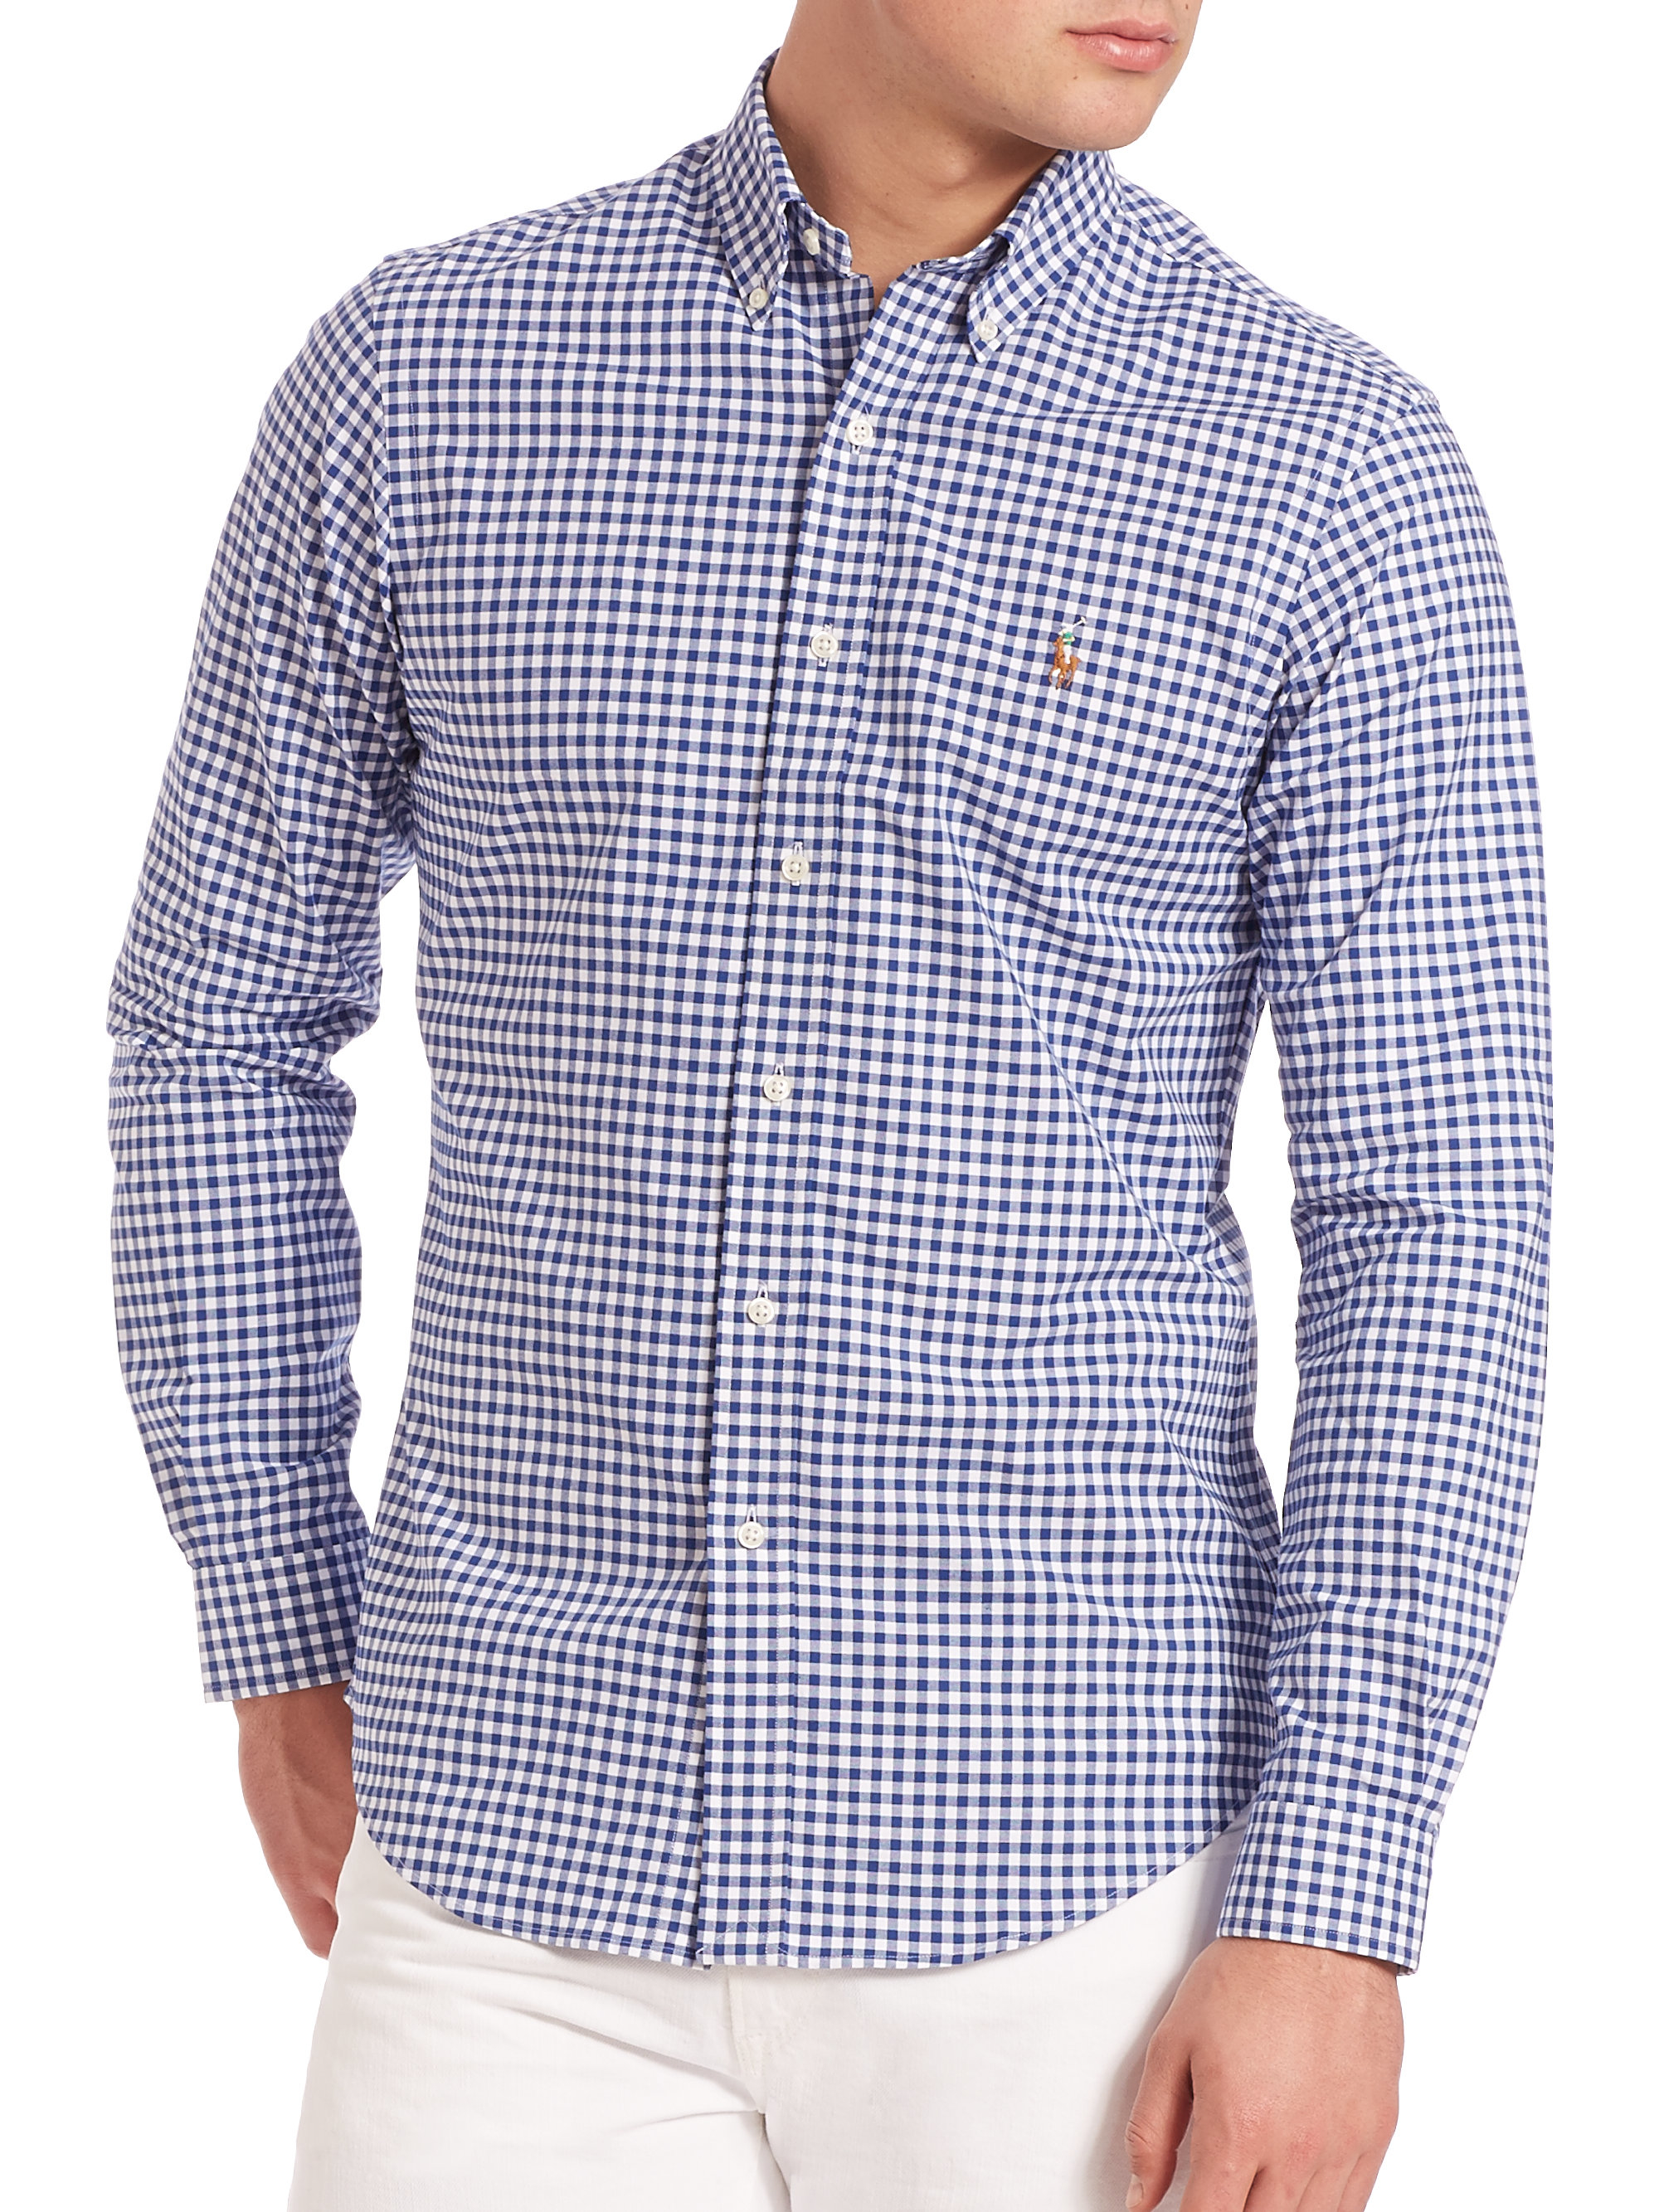 8a296ed1ad Polo Ralph Lauren Slim-fit Gingham Oxford Shirt in Blue for Men - Lyst